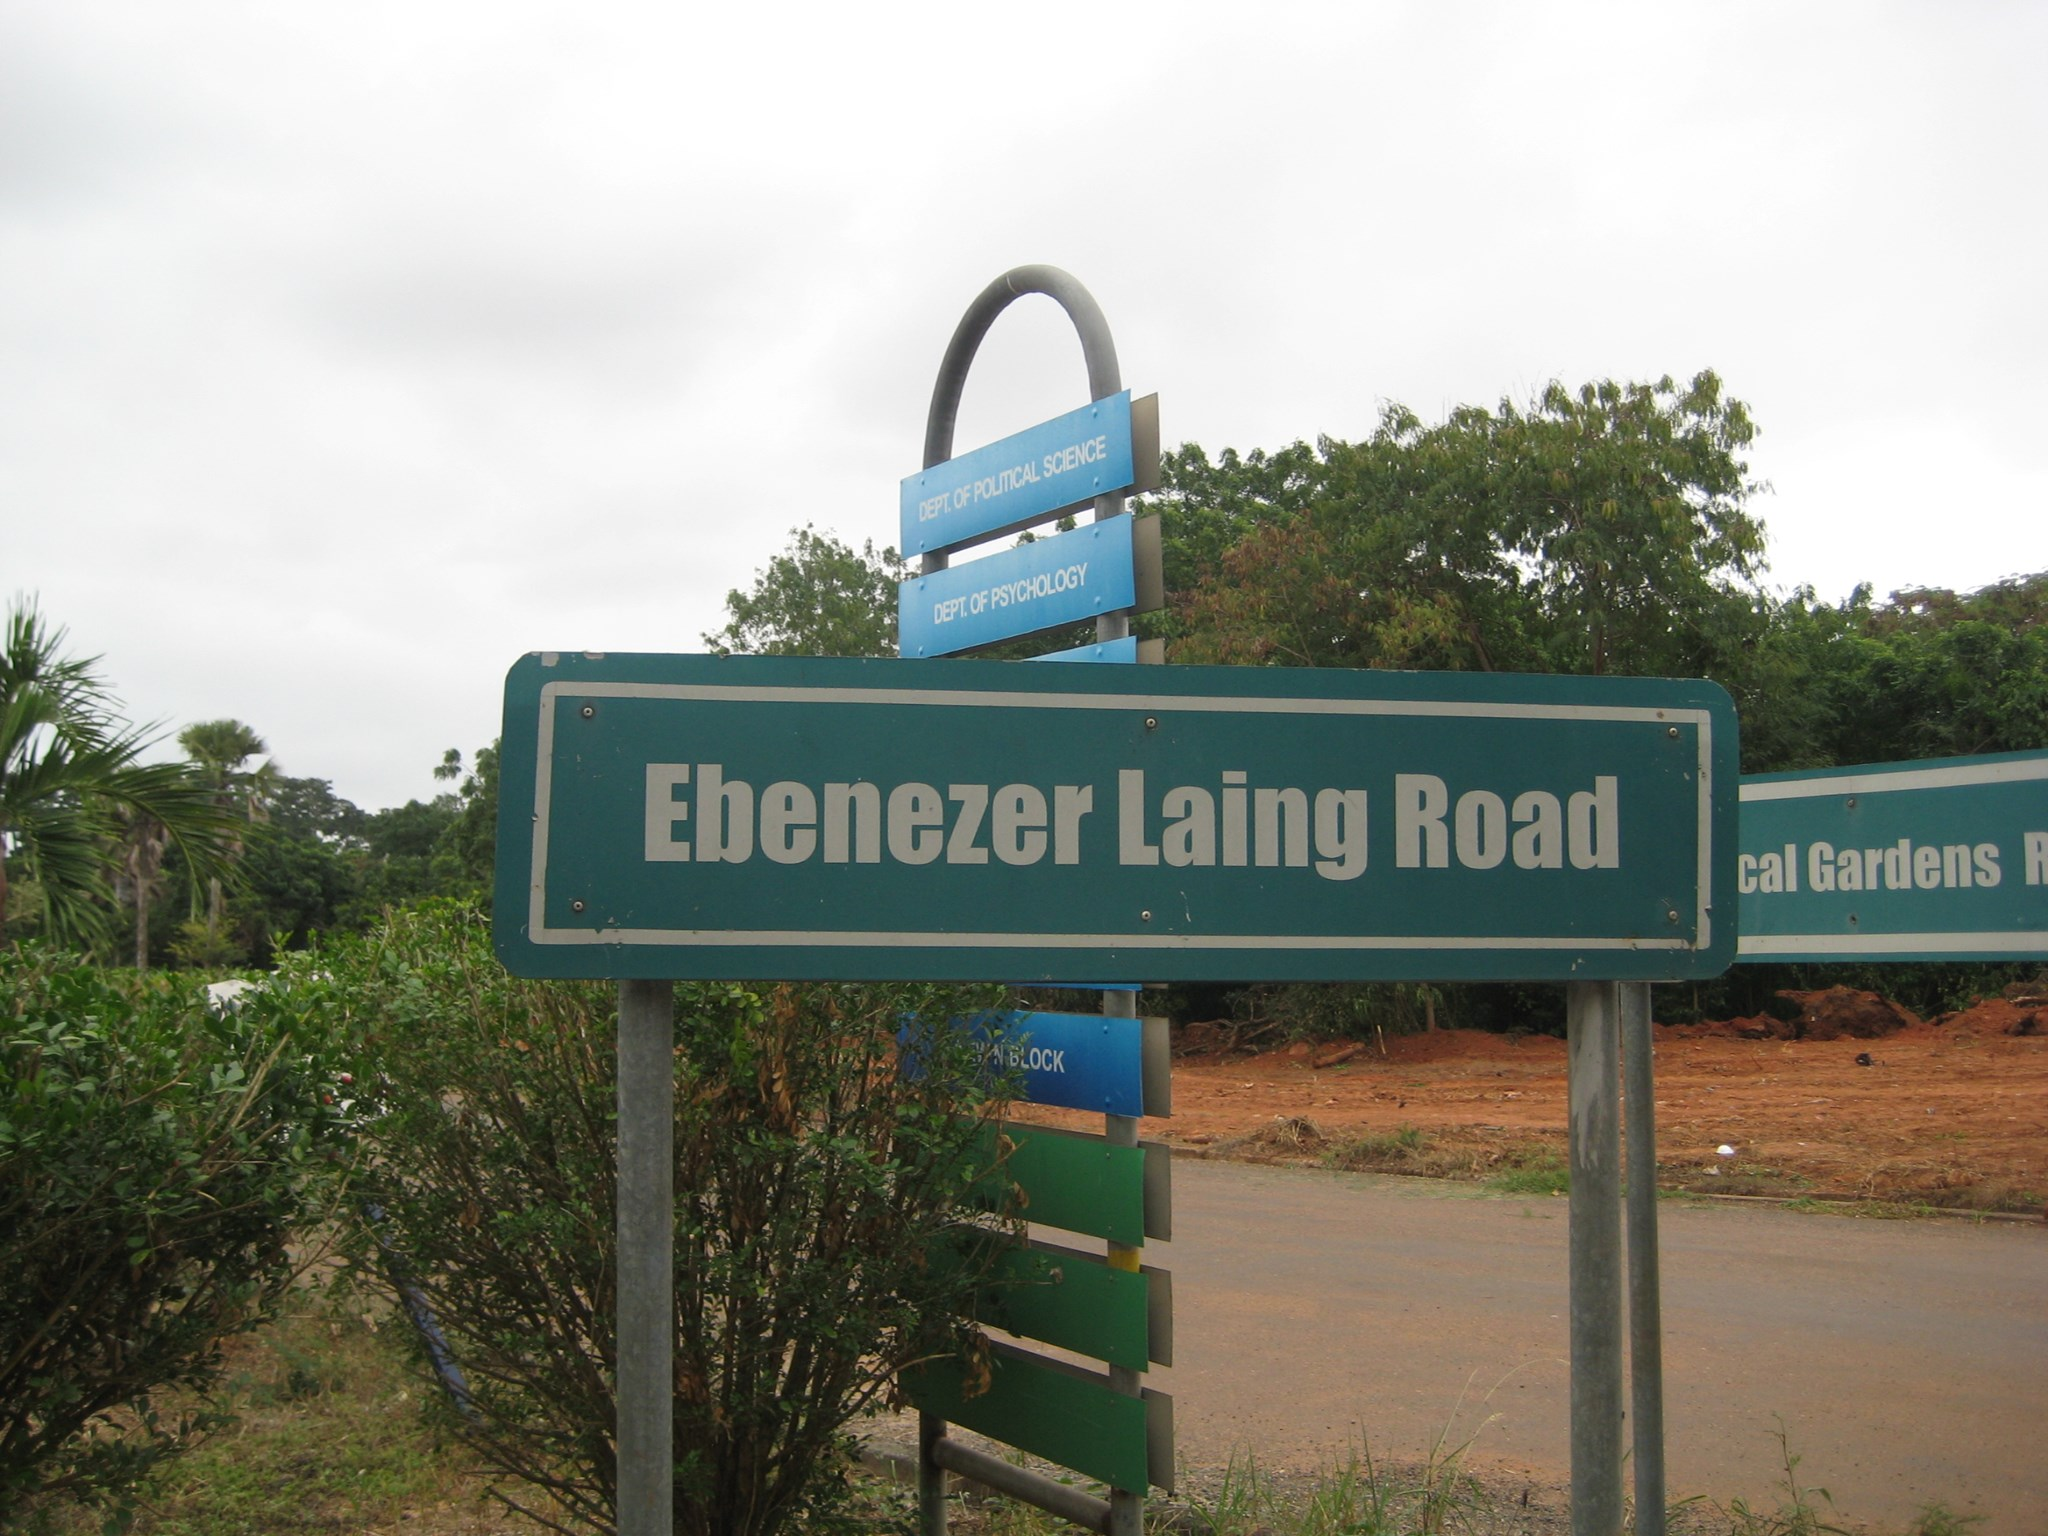 The road between Botany and N2 was named after him.  Photo by Hilda Laing.